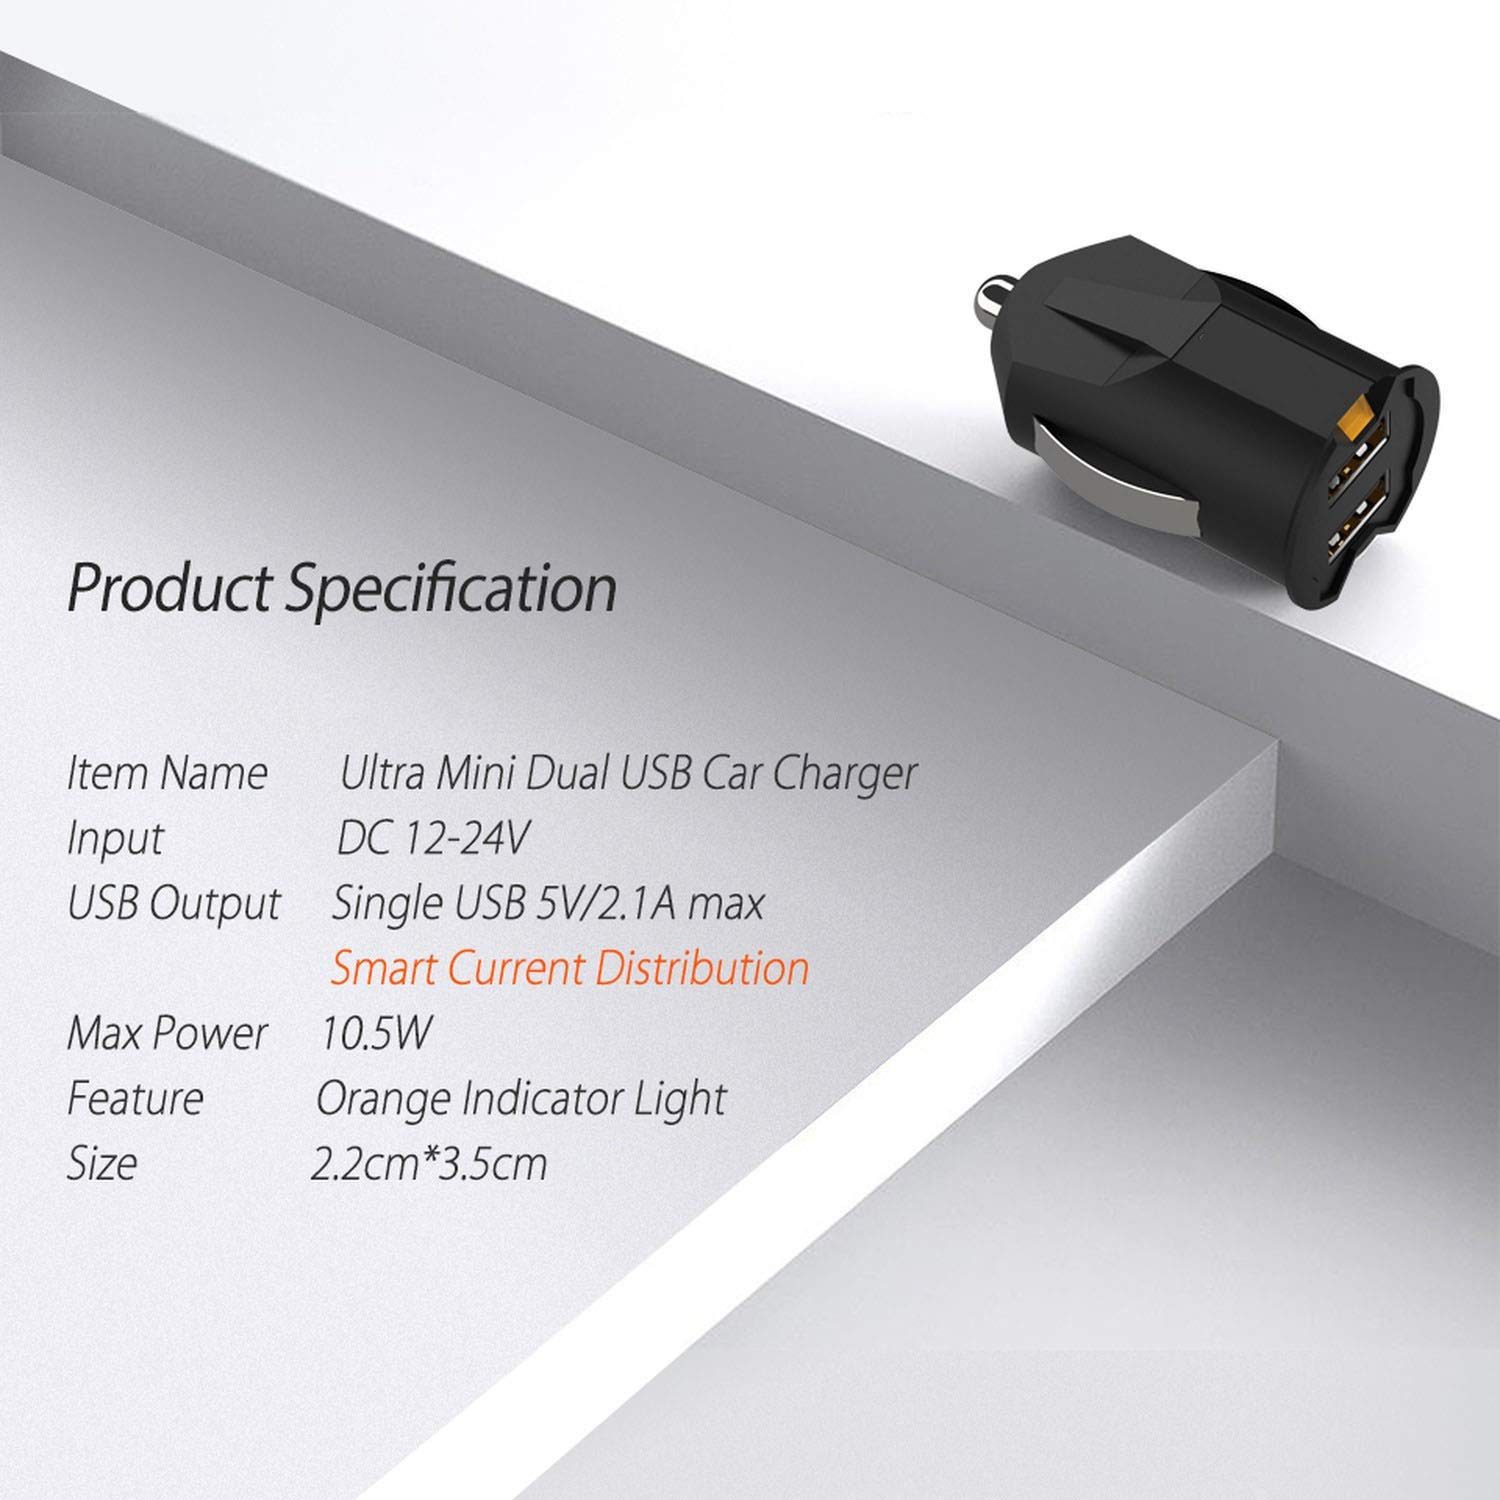 Amazon.com: Smallest Mini USB Car Charger Adapter 2A Car USB ...